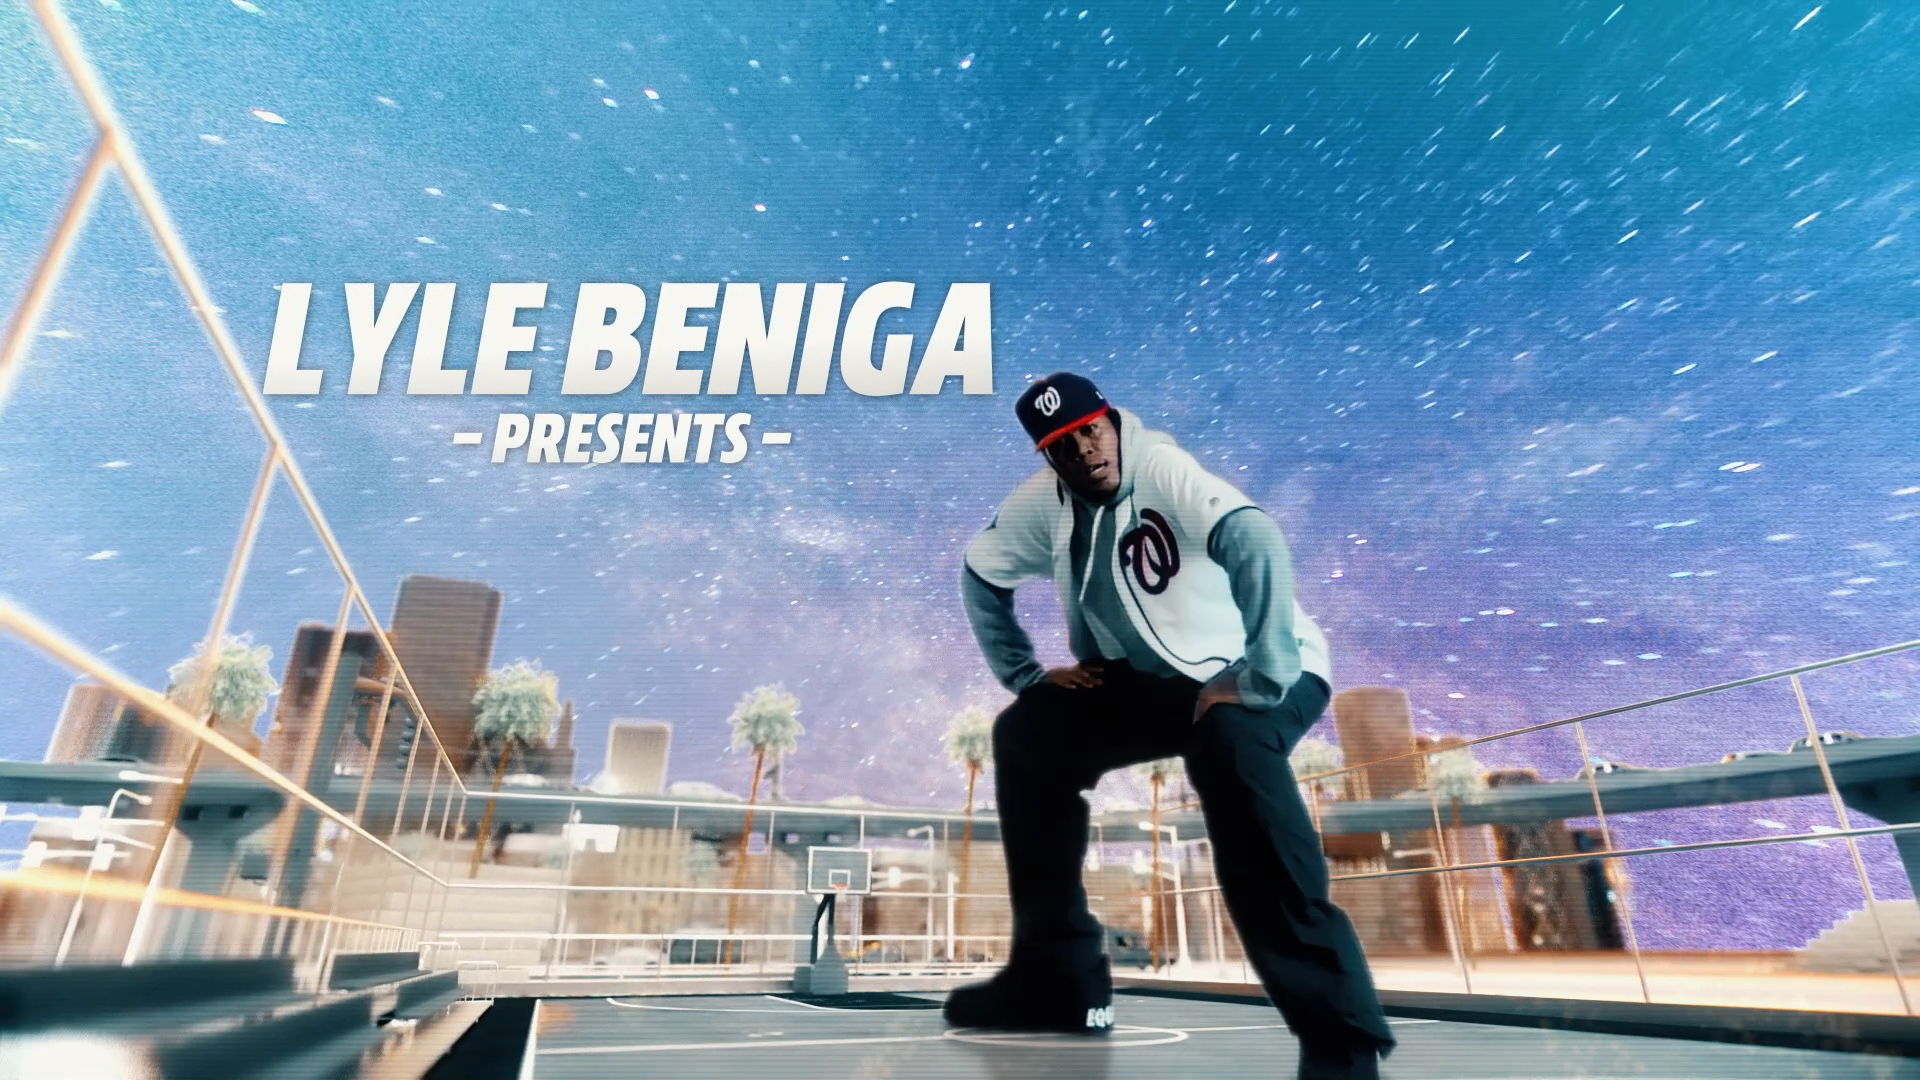 man in baseball cap and jersey dancing in front of motion graphics of a city landscape